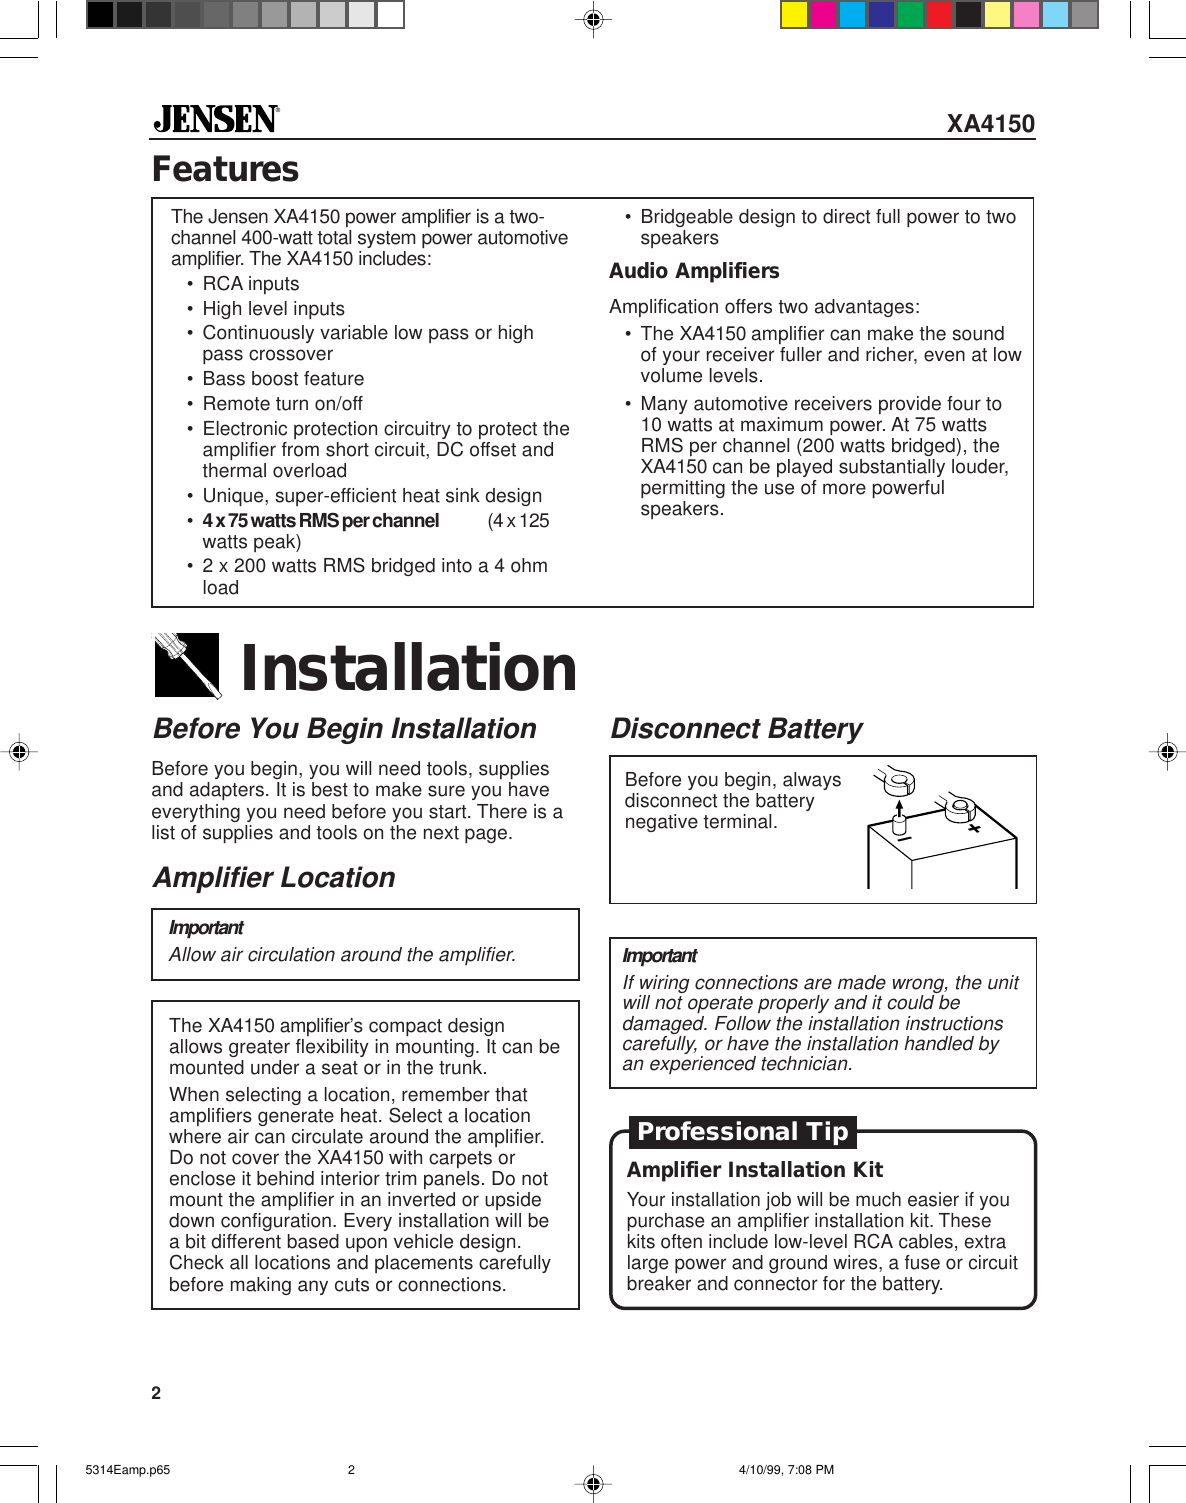 Jensen Xa4150 Users Manual 5314eampp65 Wiring Add The 2 Speakers Impedance Together For Parallel Page Of 12 5314eamp